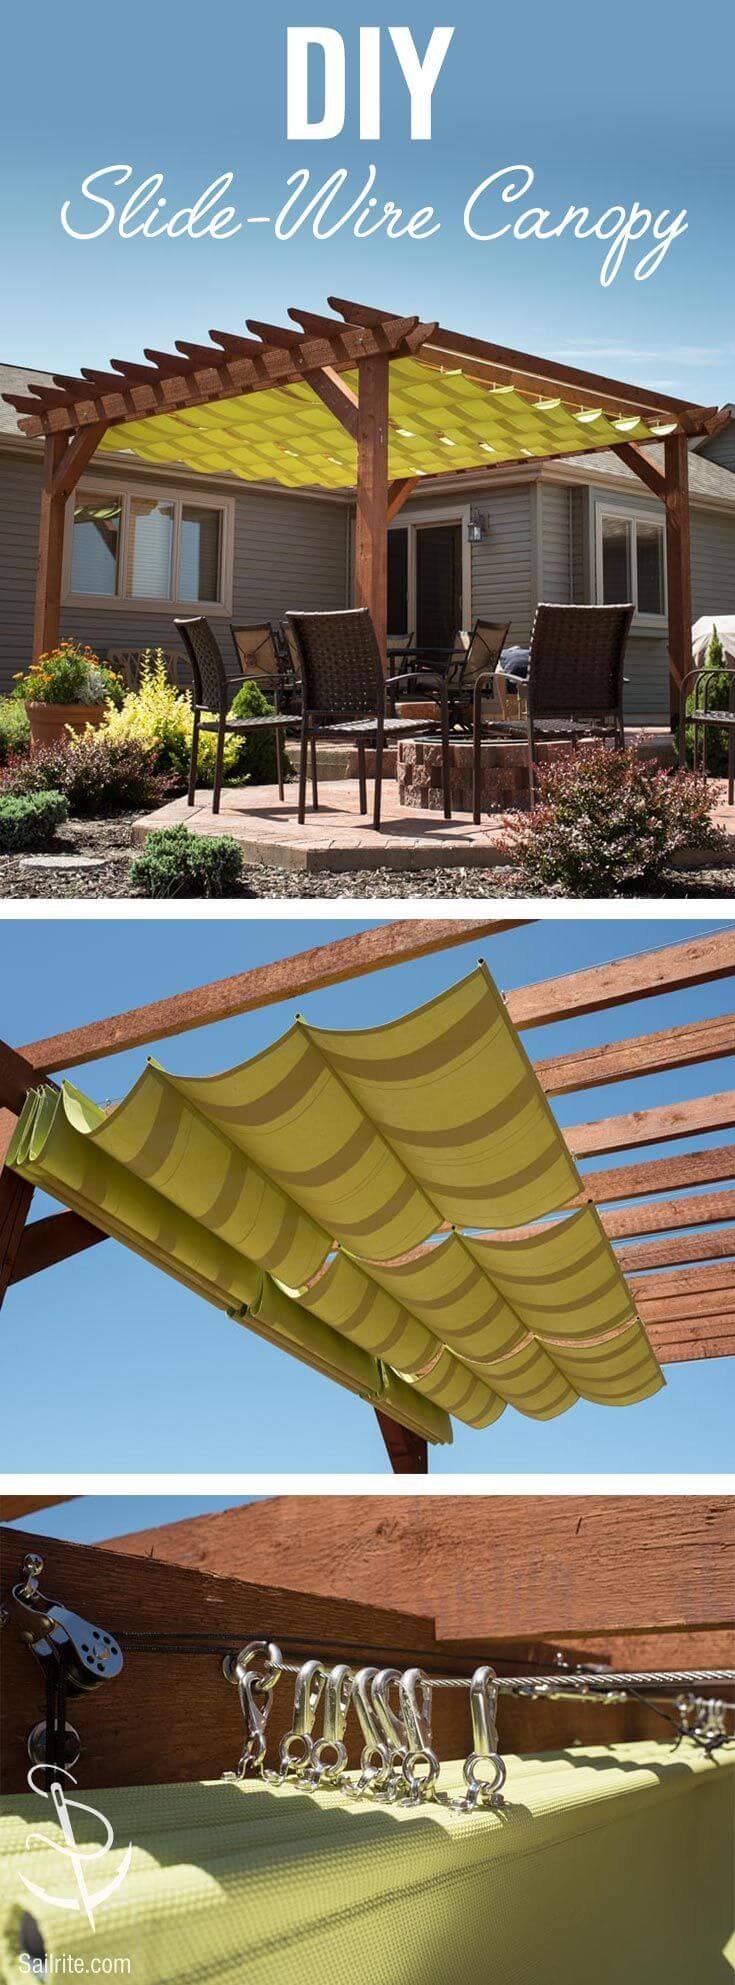 18. Tuscan Shelter Slide Wire Canopy